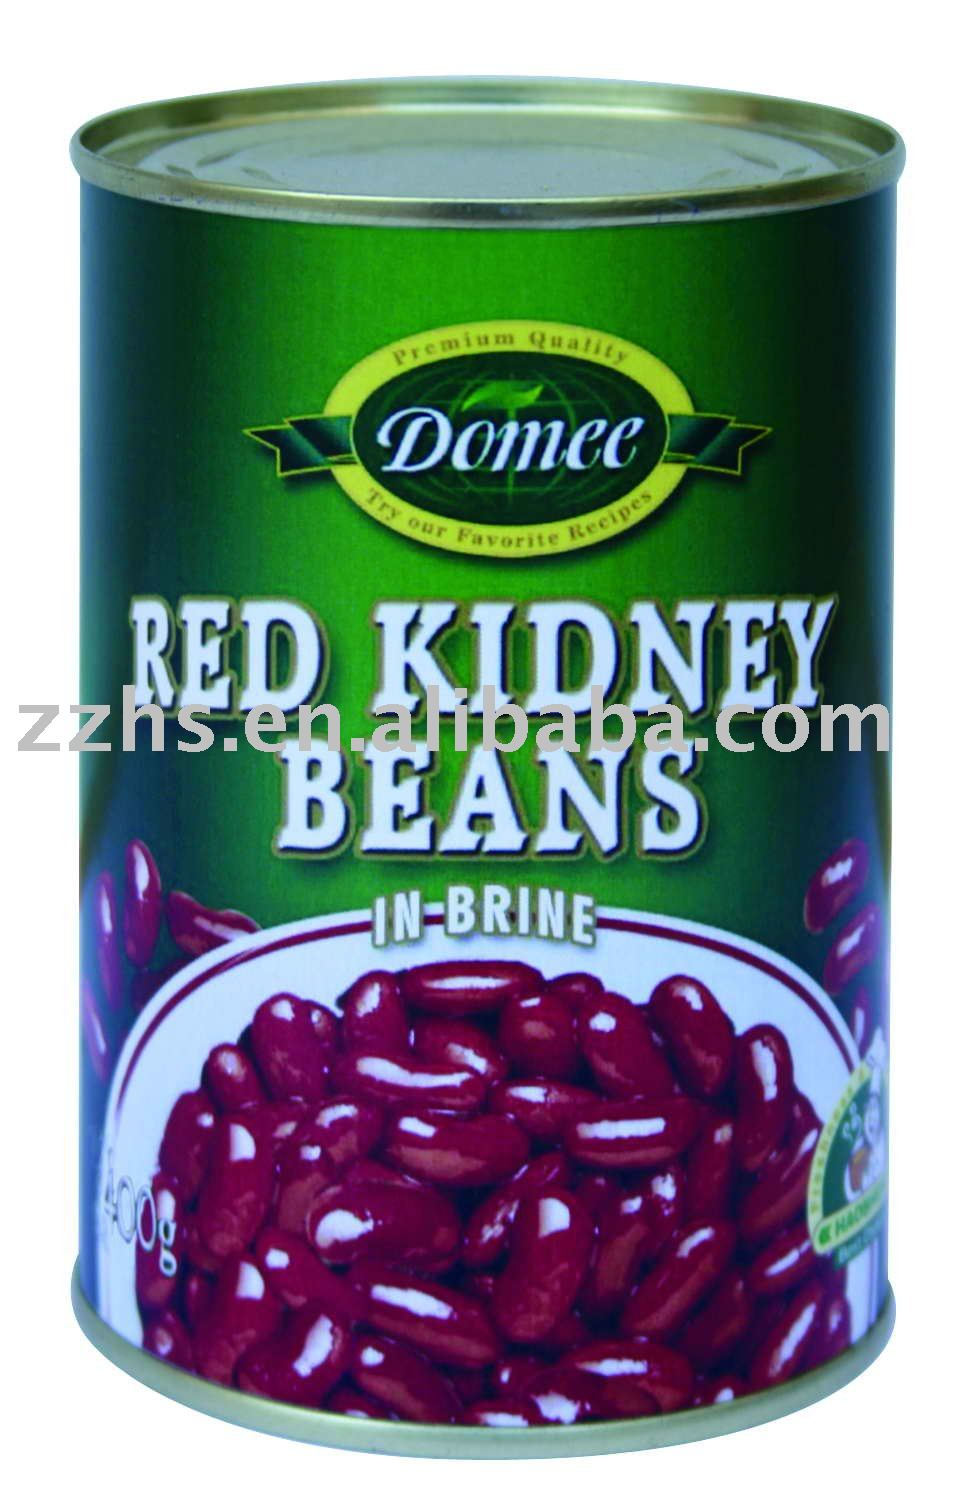 Canned Red Kidney Beans in brine, red kidney beans,canned vegetable